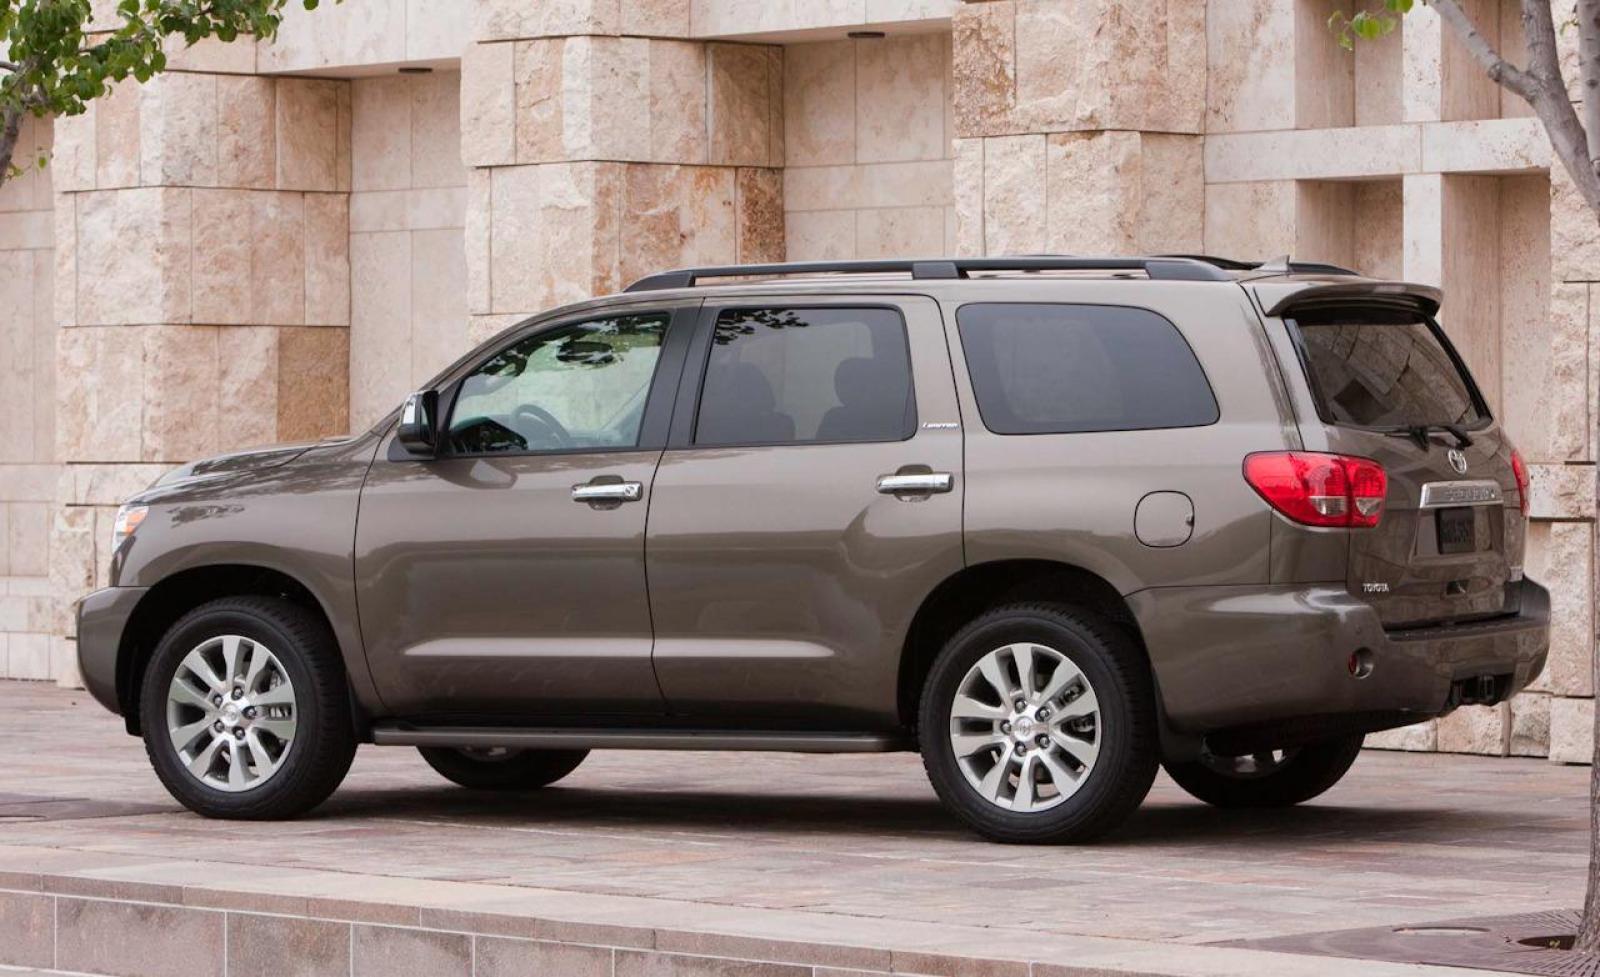 2008 toyota sequoia information and photos zombiedrive. Black Bedroom Furniture Sets. Home Design Ideas